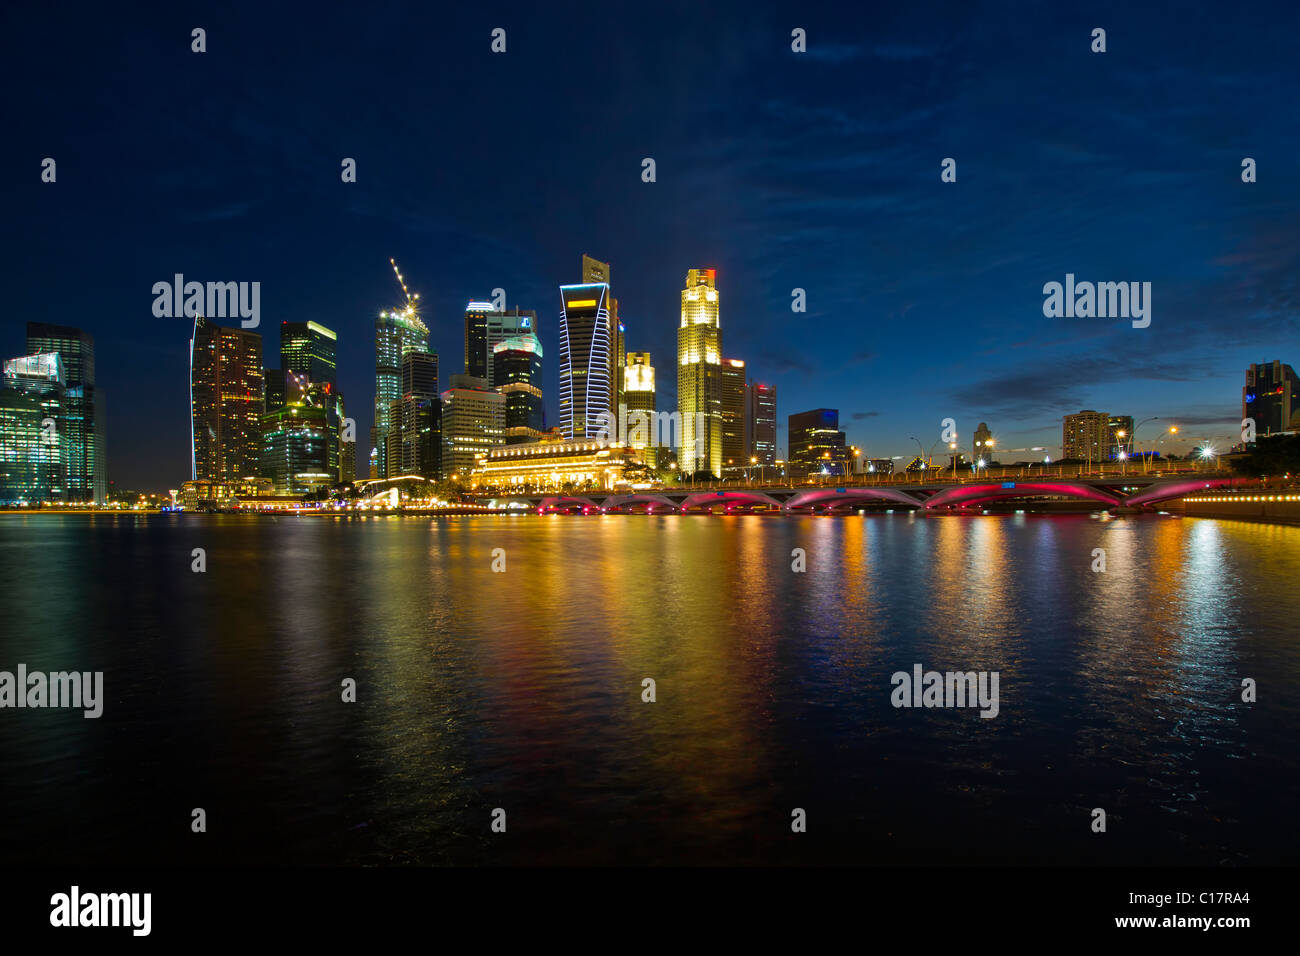 Singapore City Skyline by Marina Bay Esplanade at Blue Hour - Stock Image